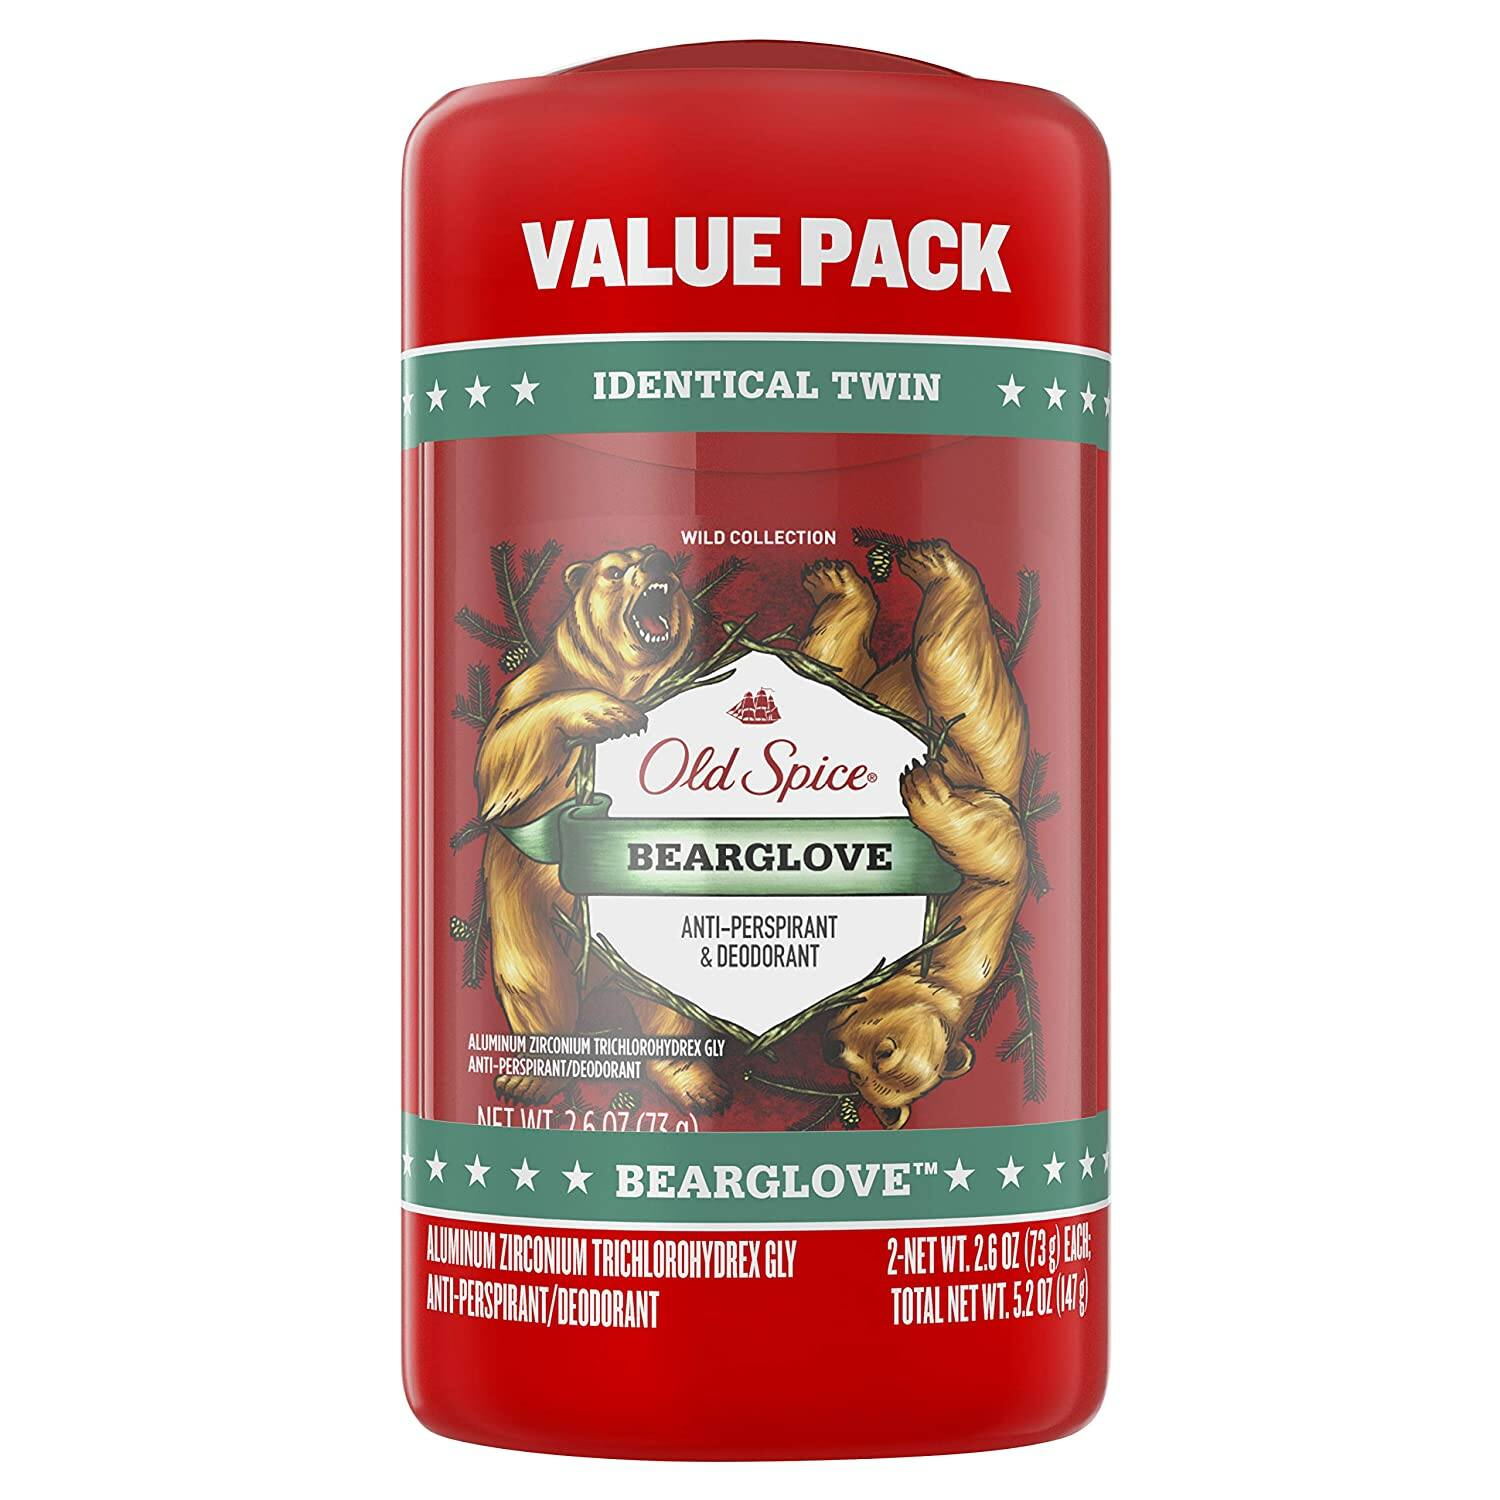 2-Count 2.6-Oz Old Spice Antiperspirant & Deodorant (Bearglove)